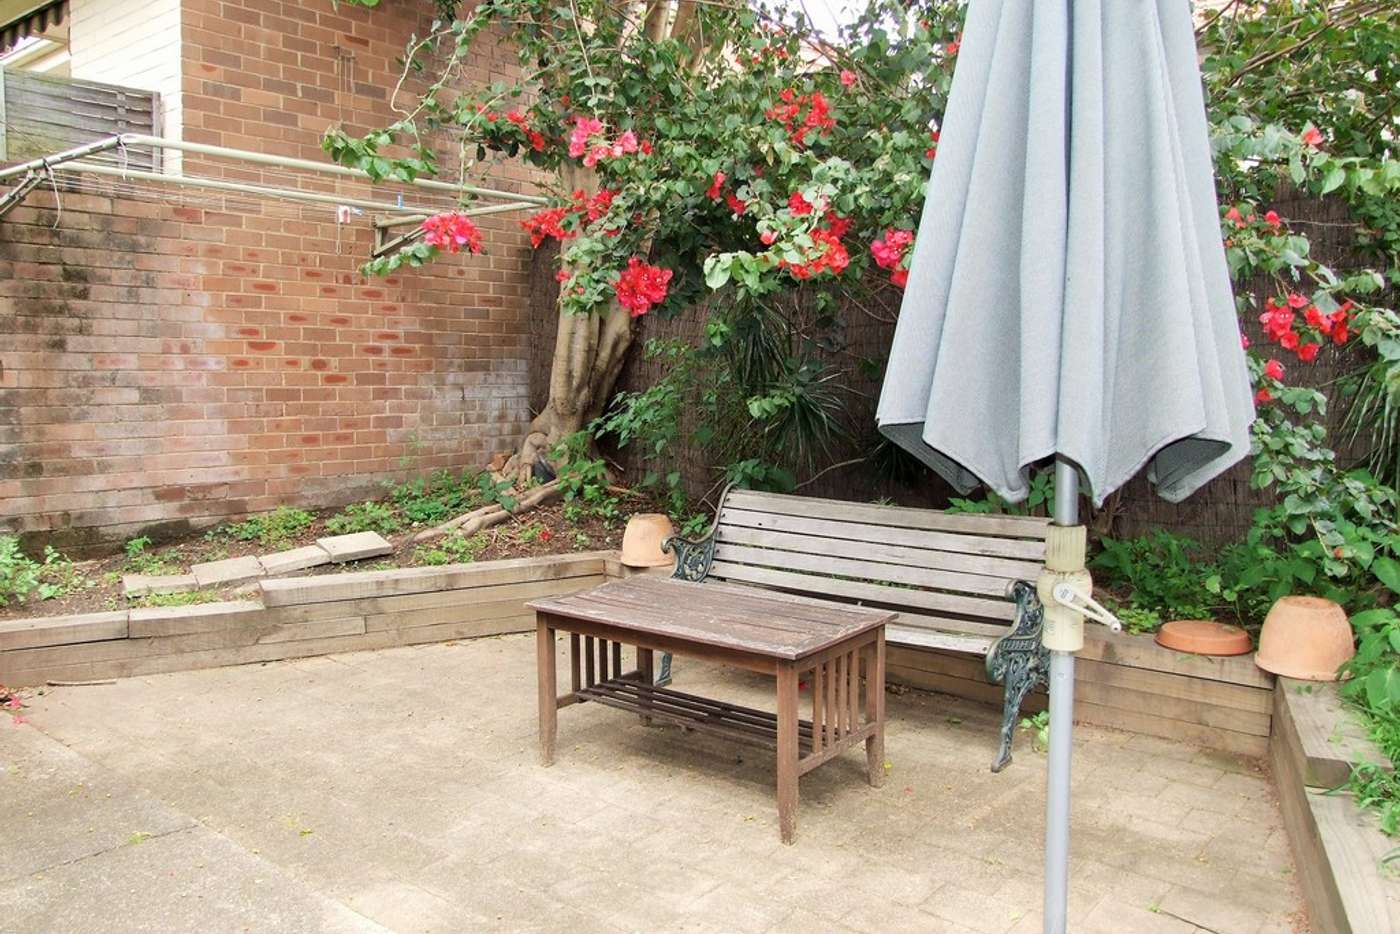 Main view of Homely house listing, 17 Old Lane, Cremorne NSW 2090